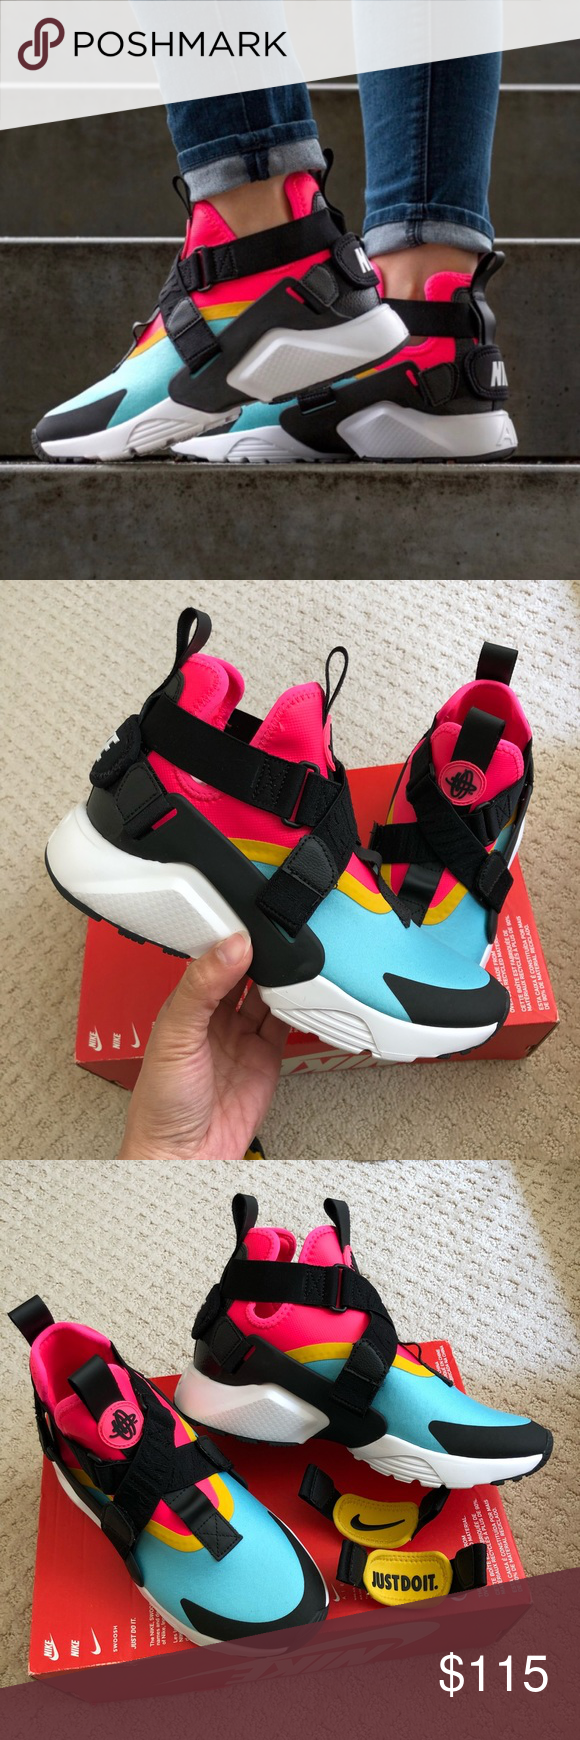 new style 43dee dac80 New🌧 NIKE Air Huarache City ~ various sizes brand new no lid bleached aqua  black racer pink comes from smoke free home 100% authentic A18000062    J71 43 ...